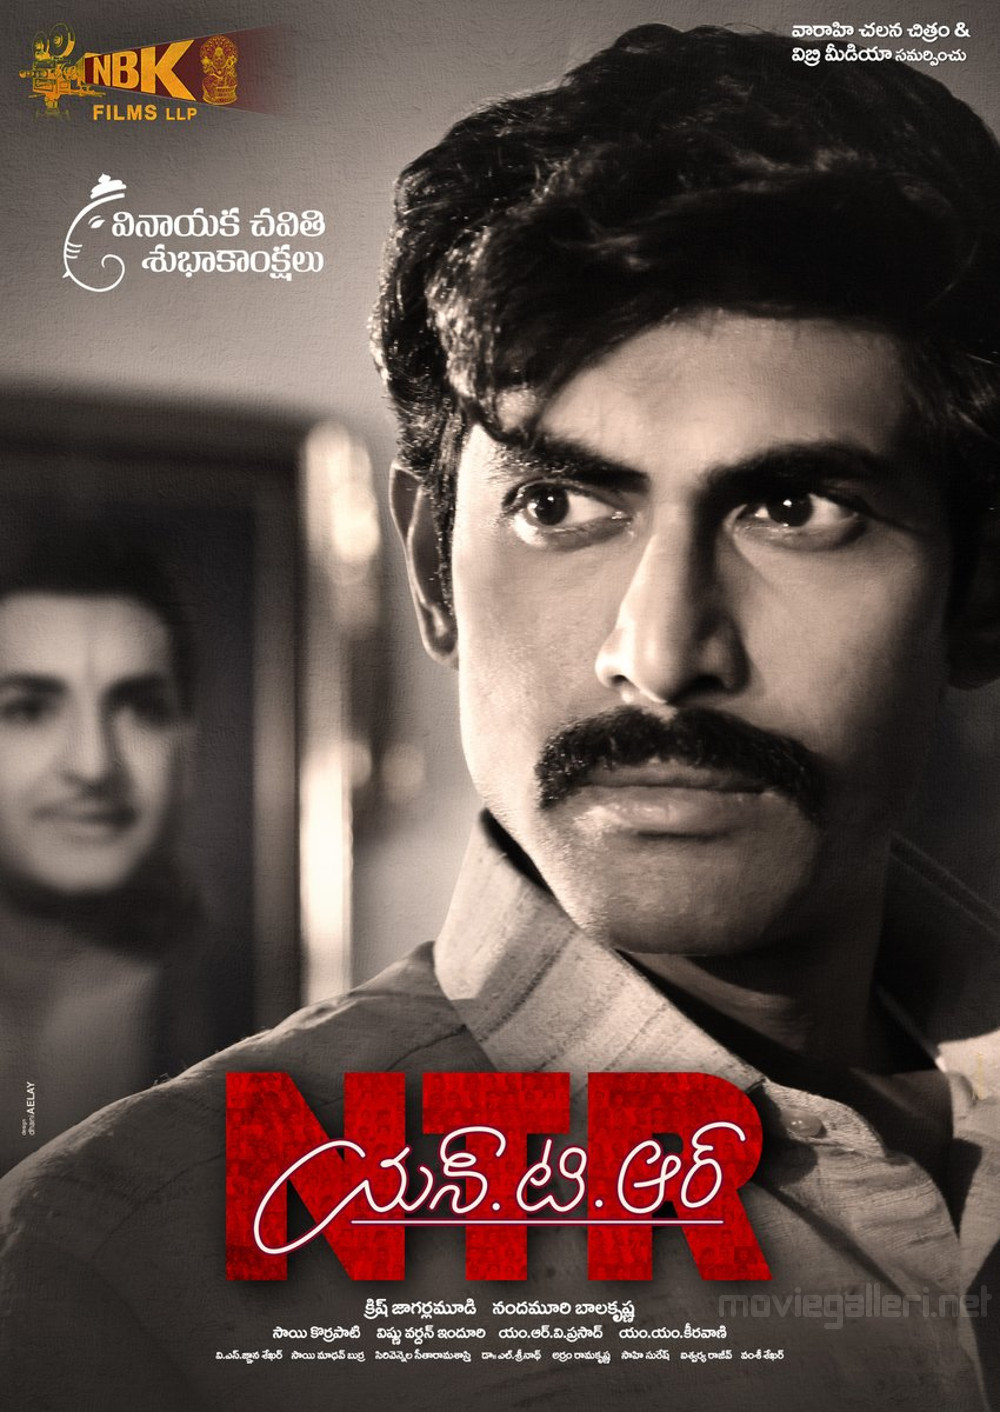 Actor Rana Daggubati as Nara Chandrababu Naidu from NTR Biopic Movie Poster HD